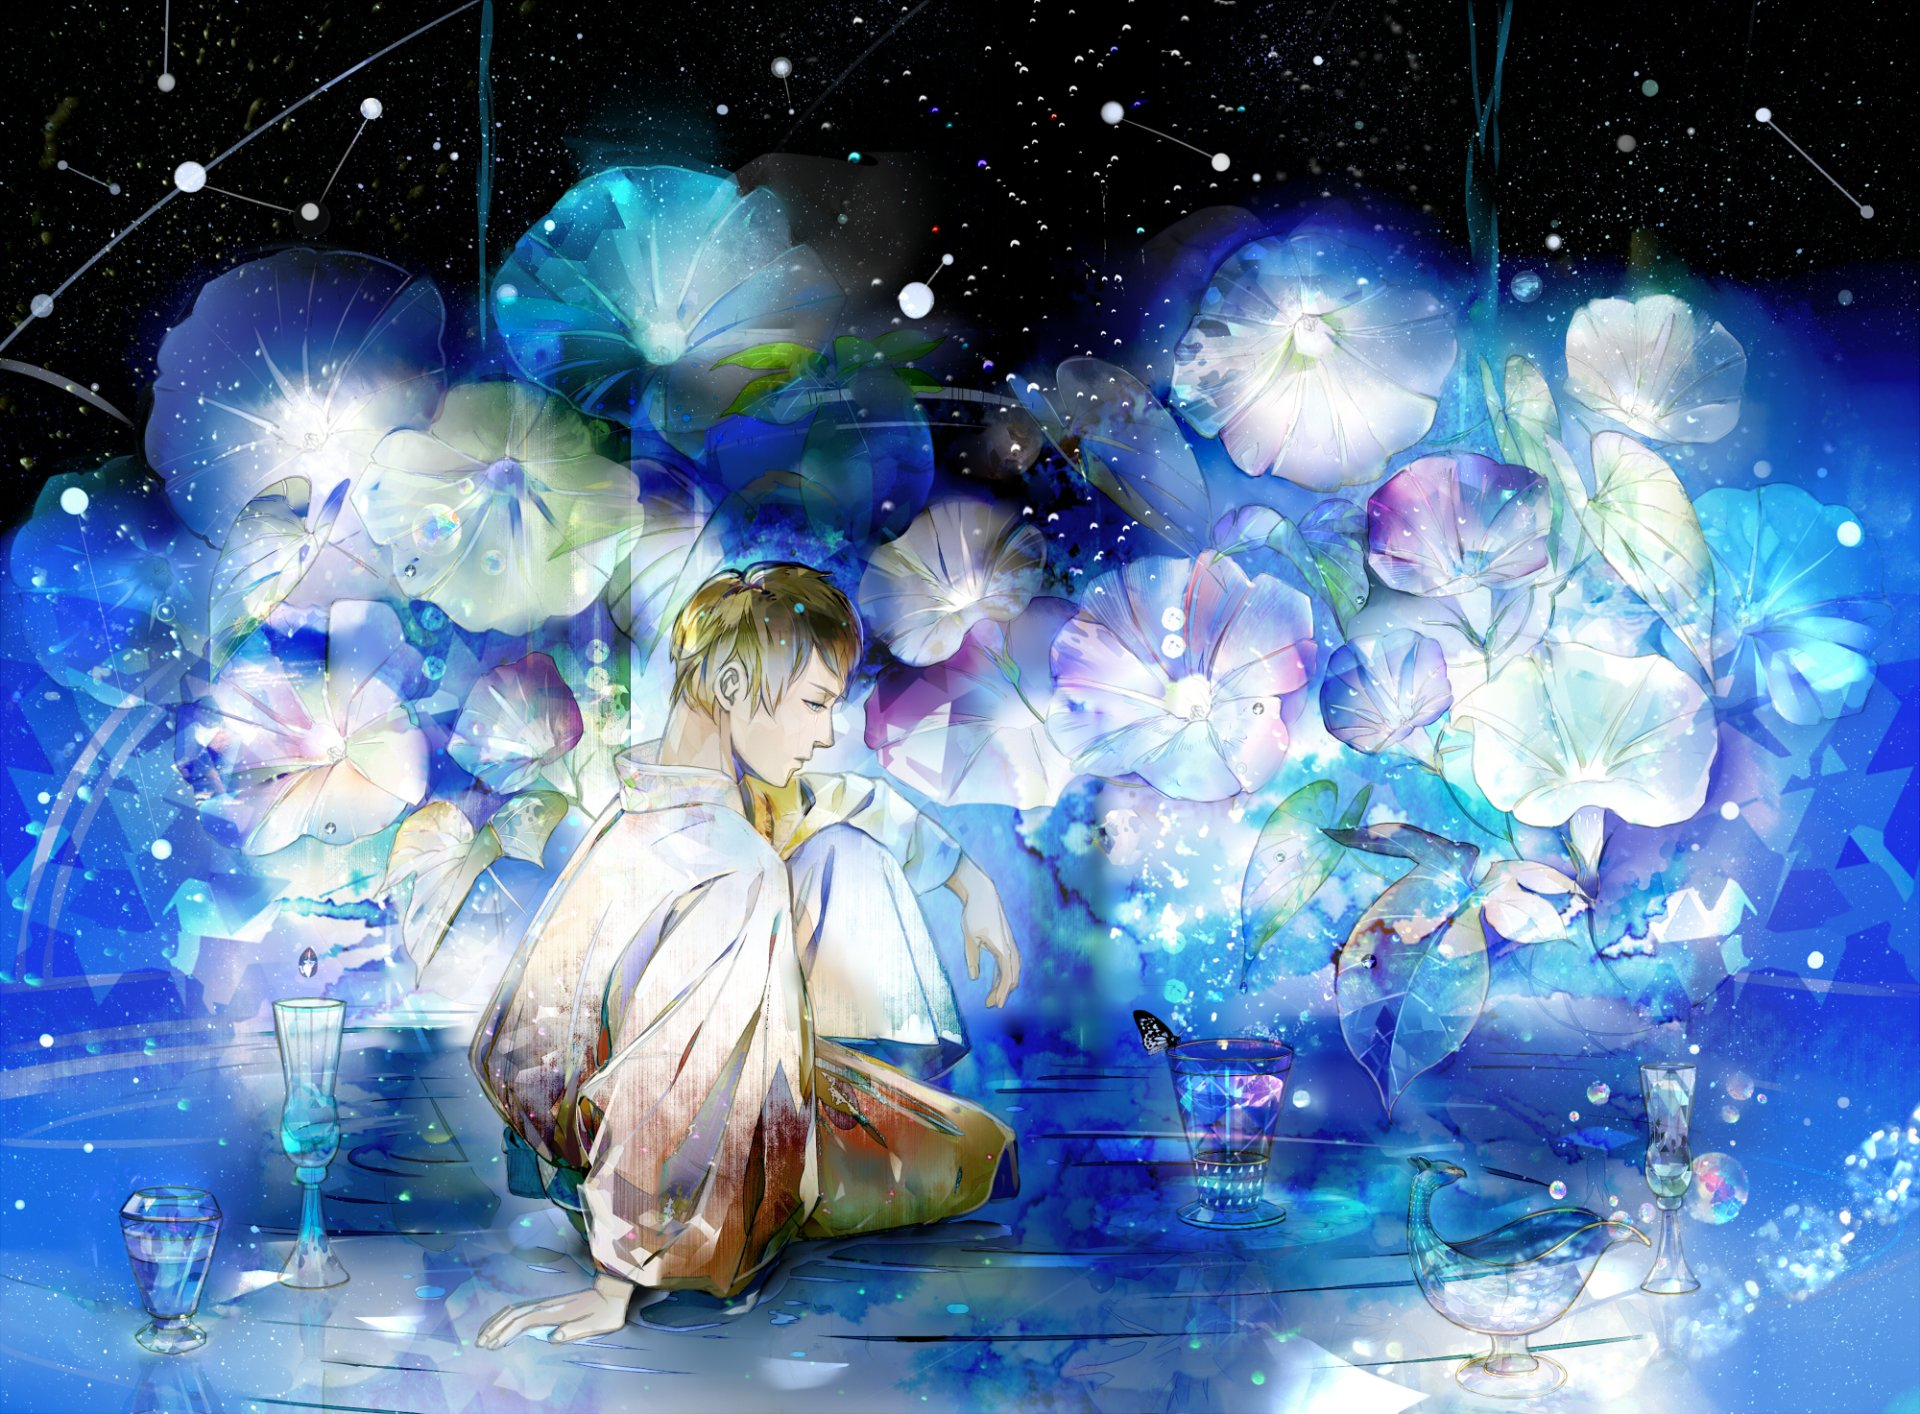 Anime - Original  Boy Short Hair Brown Hair Blue Water Reflection Flower Black Purple Colorful Butterfly Wallpaper